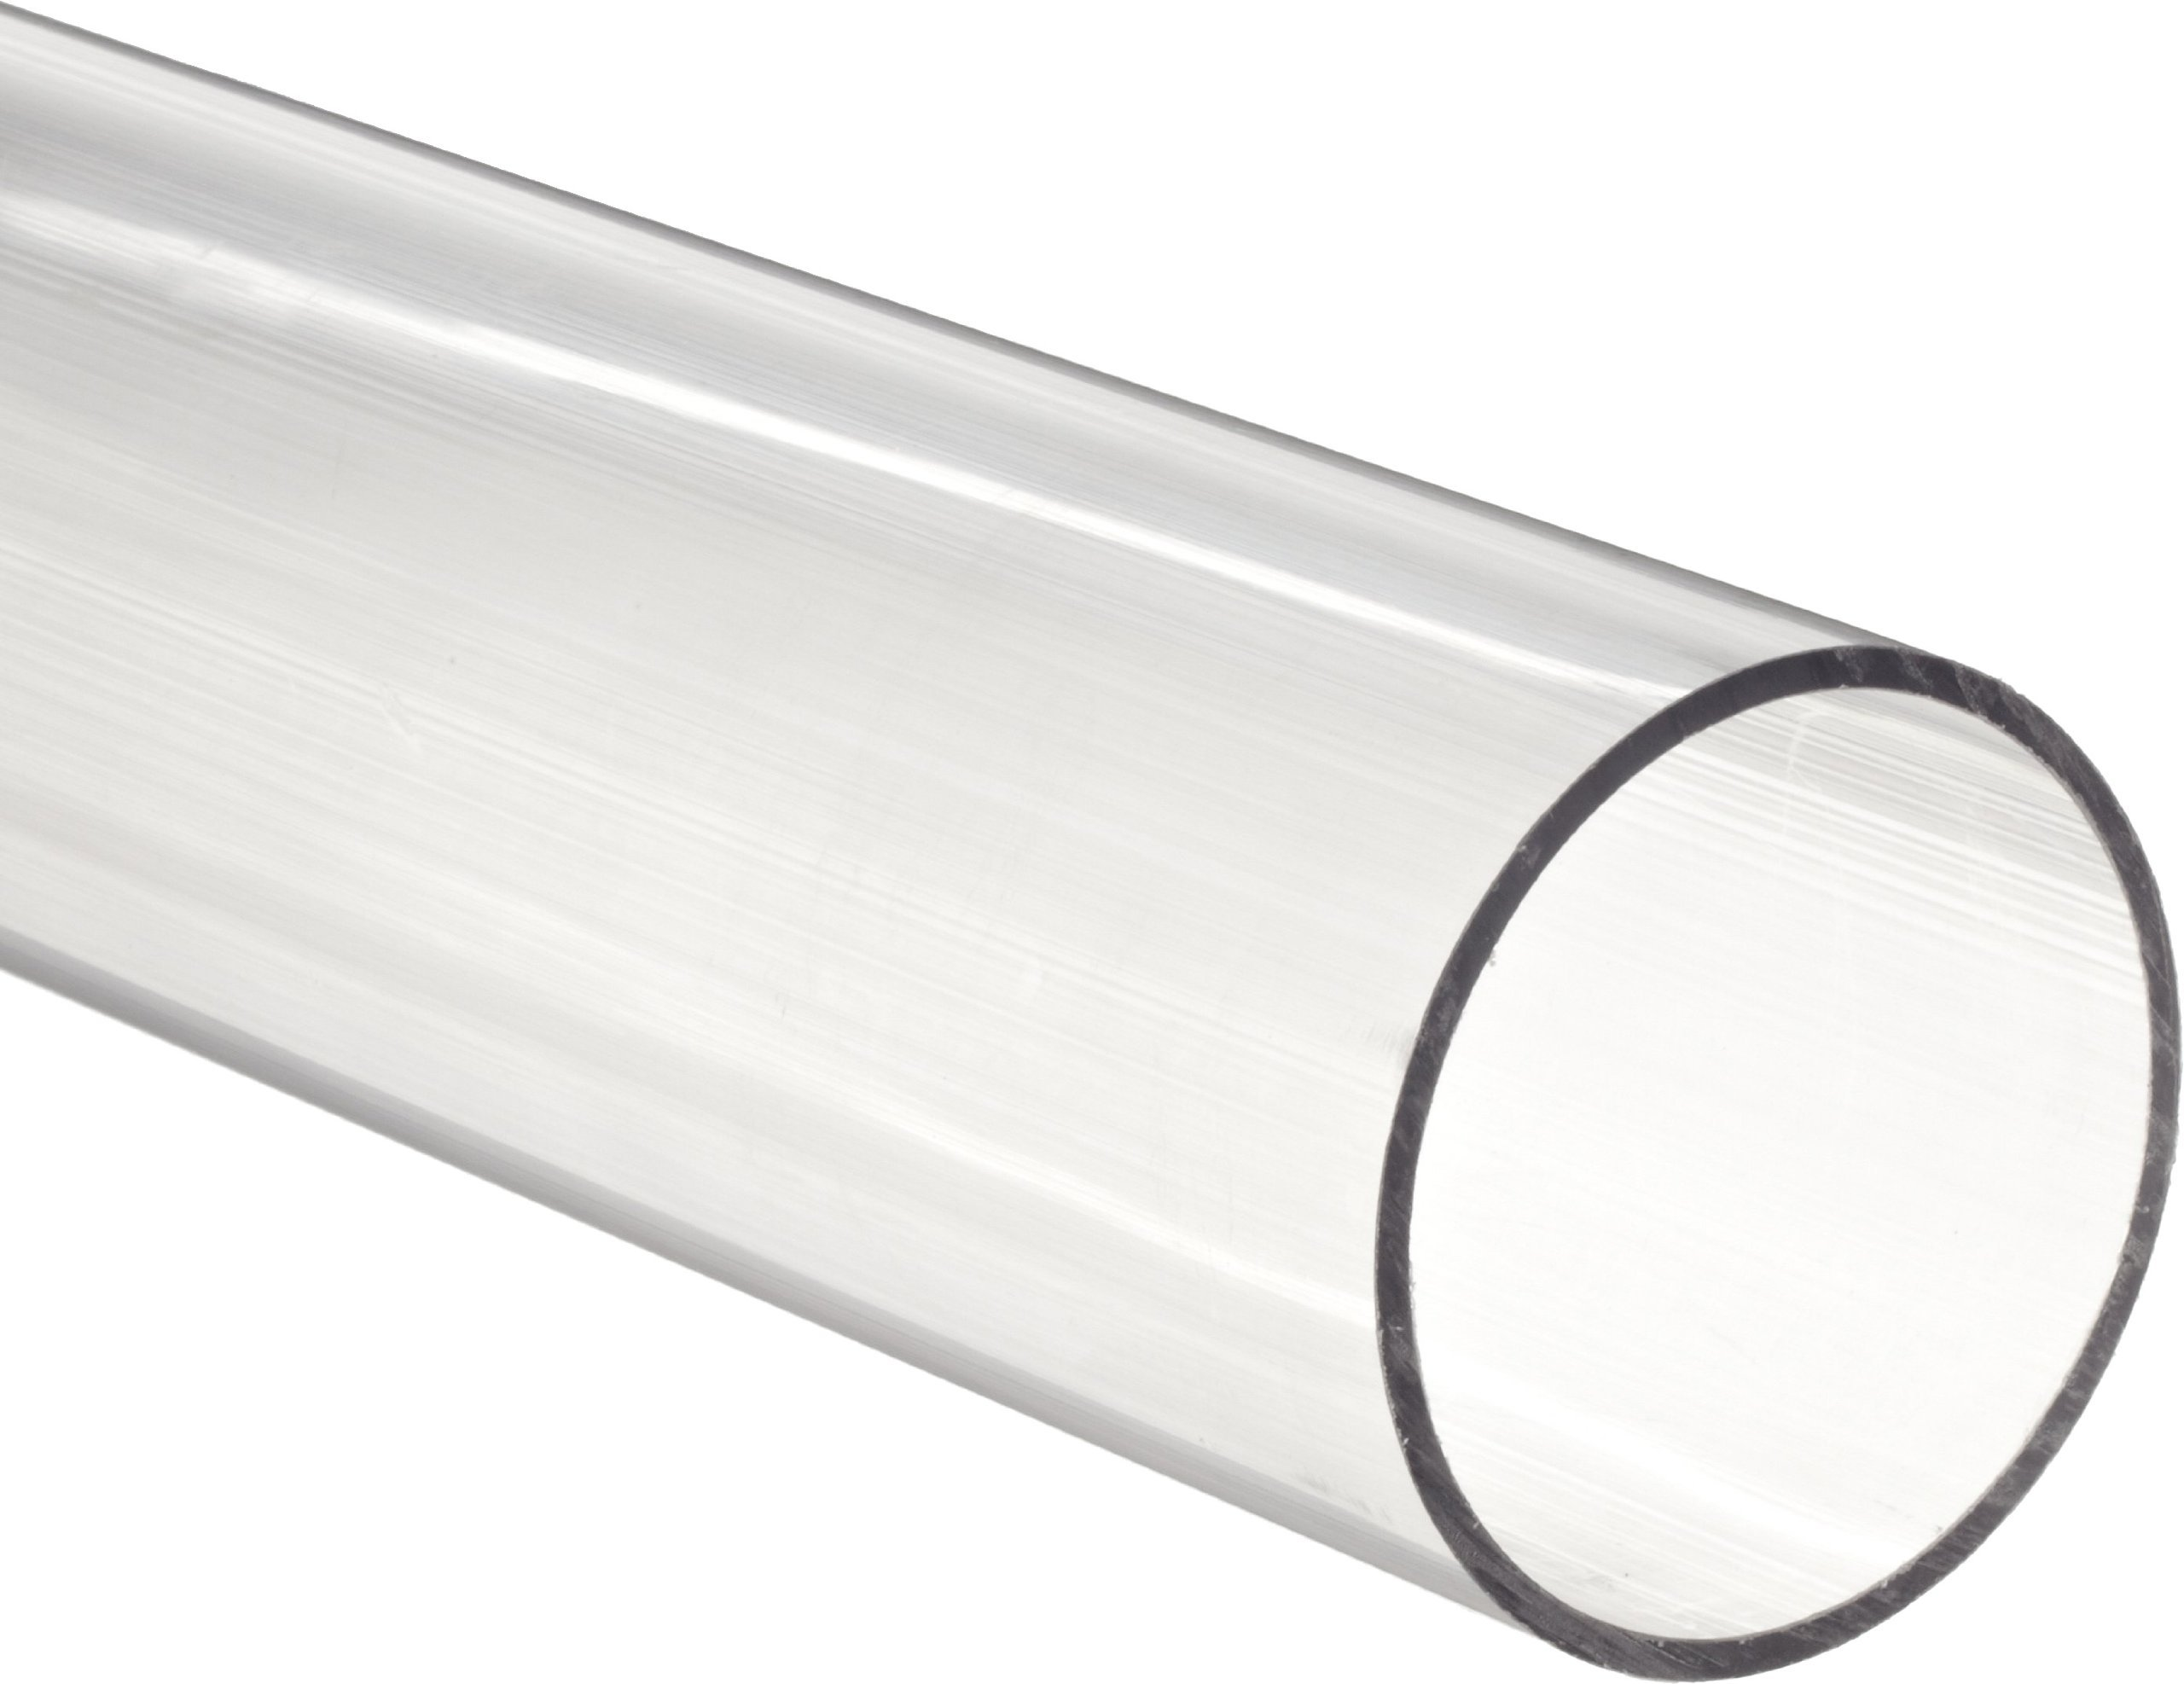 Insultab 30-VGA-2000C-P1 Vinylguard Shrink-To-Fit Covering, Polyvinyl Chloride, 2'' Diameter, 3'' x 12'', Clear